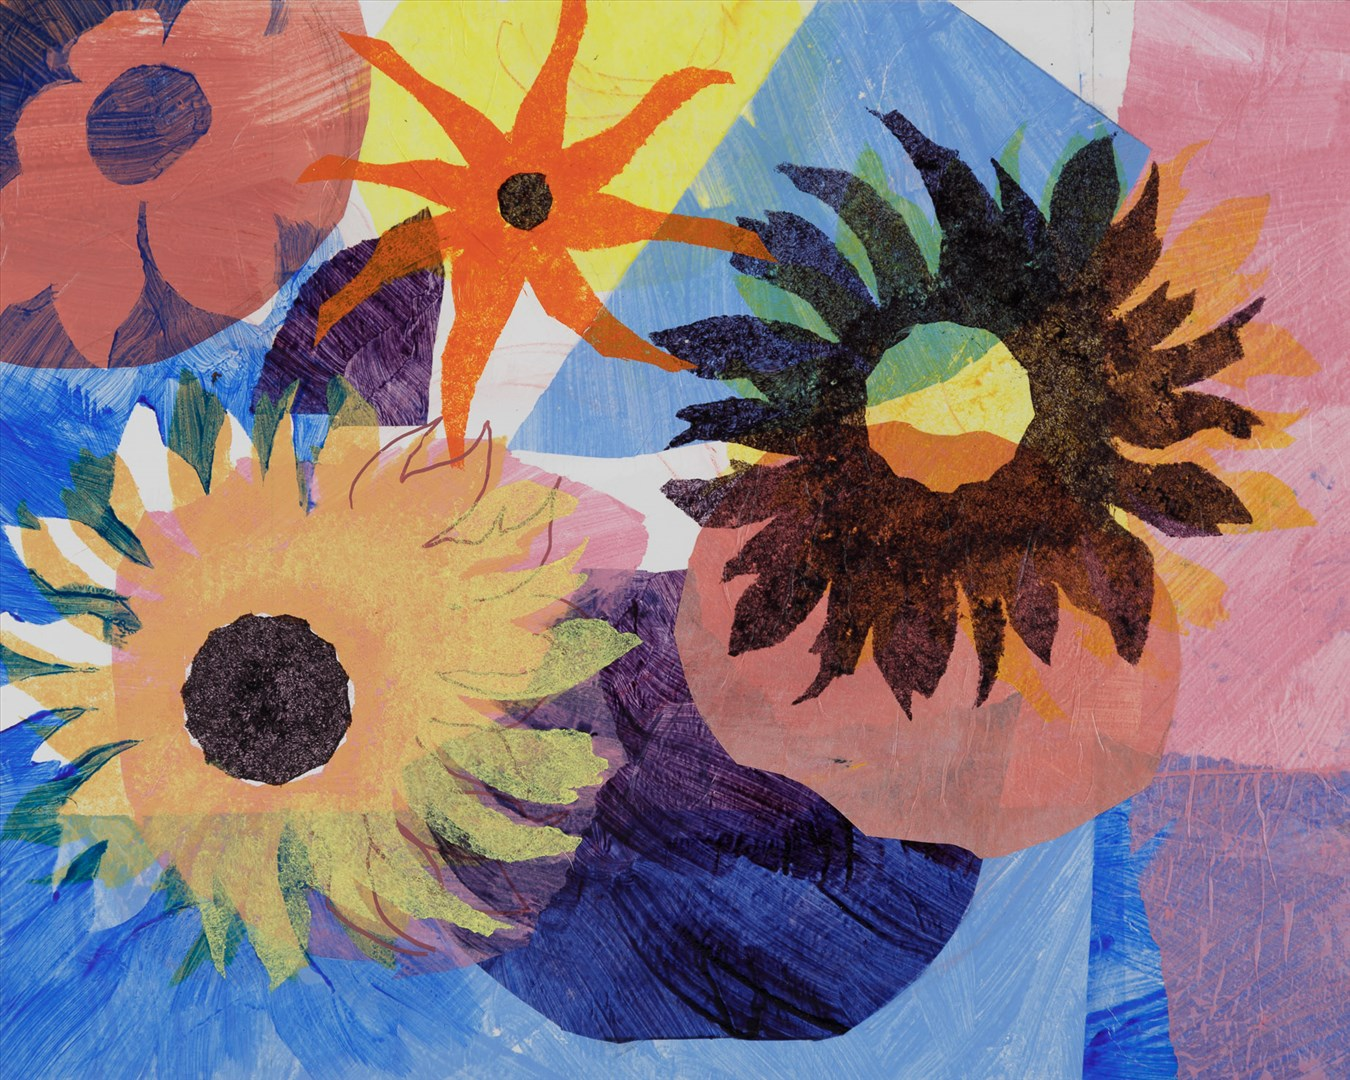 Rosemary Farrer - Flowers for Mondrian (mixed media) - Royal Academy Summer Exhibition 2021 - London lifestyle & culture blog